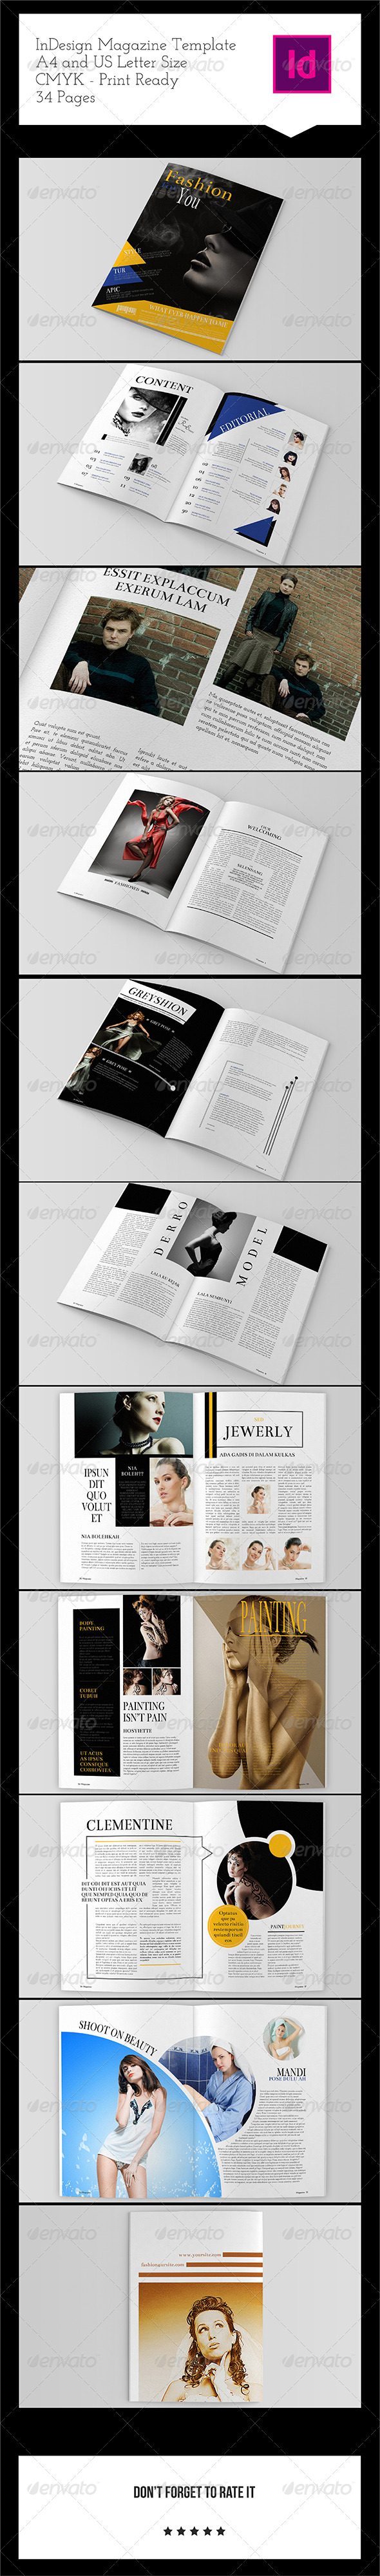 GraphicRiver Fashion Magazine Template 34 Pages 8173353